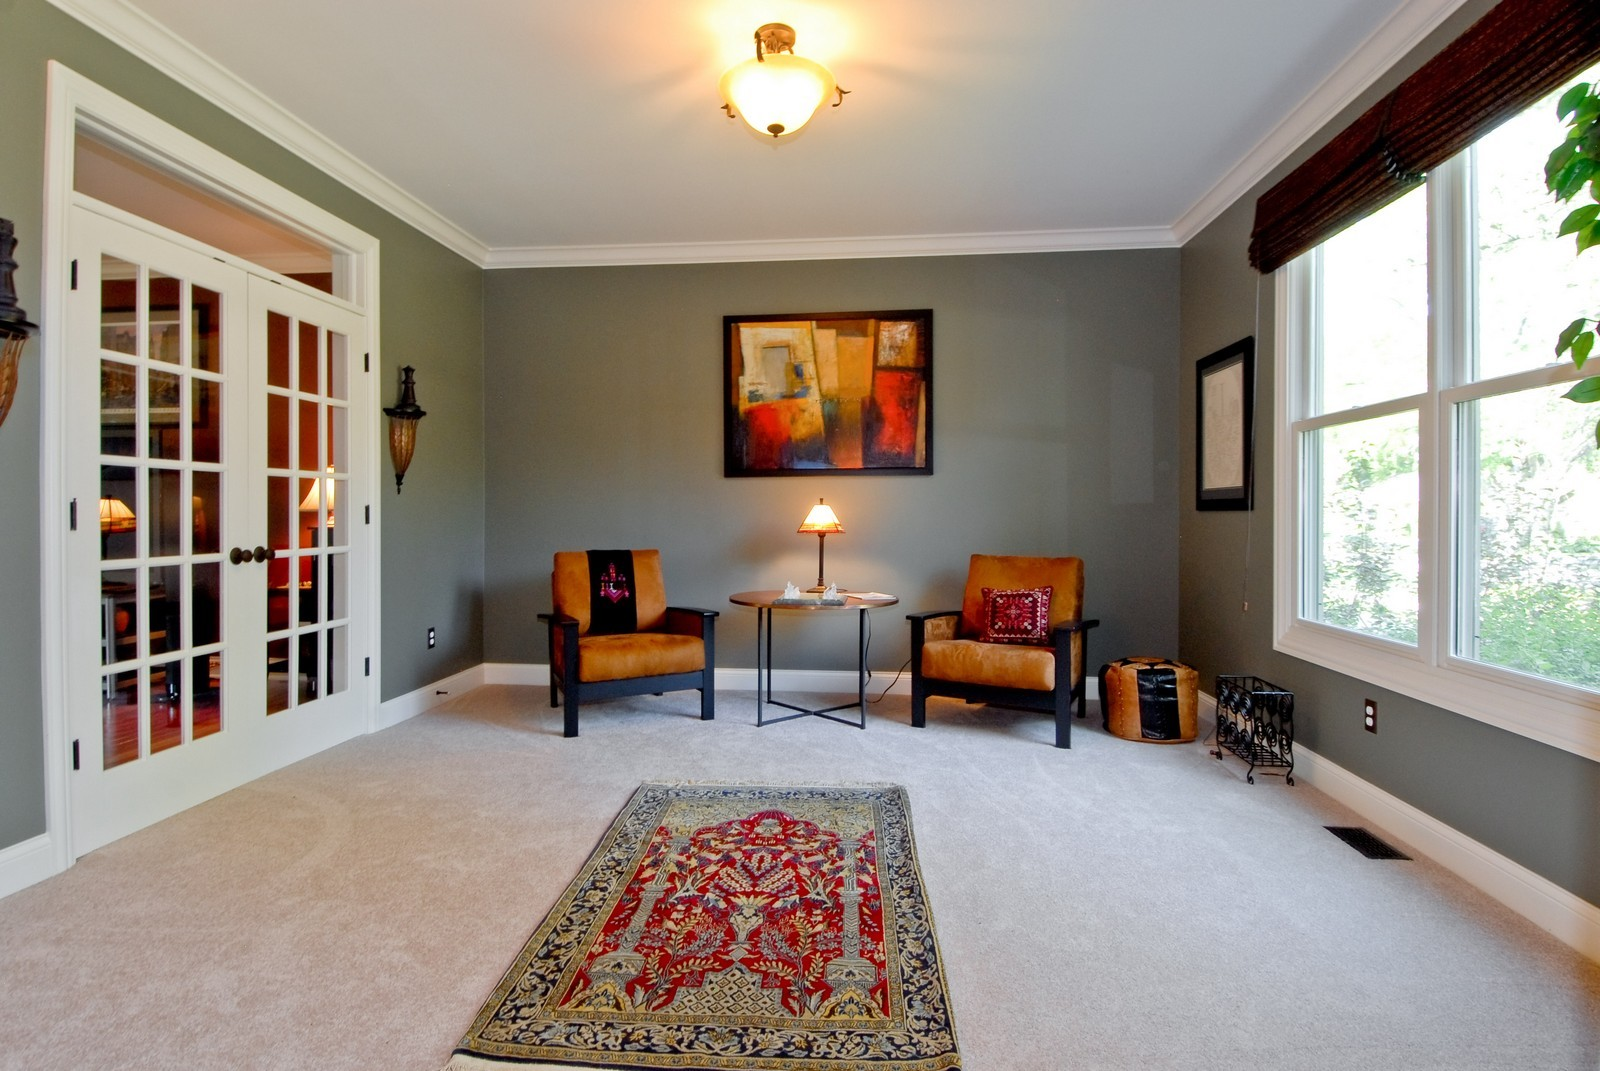 Real Estate Photography - 1221 Wing Ave, St. Charles, IL, 60174 - Living Room